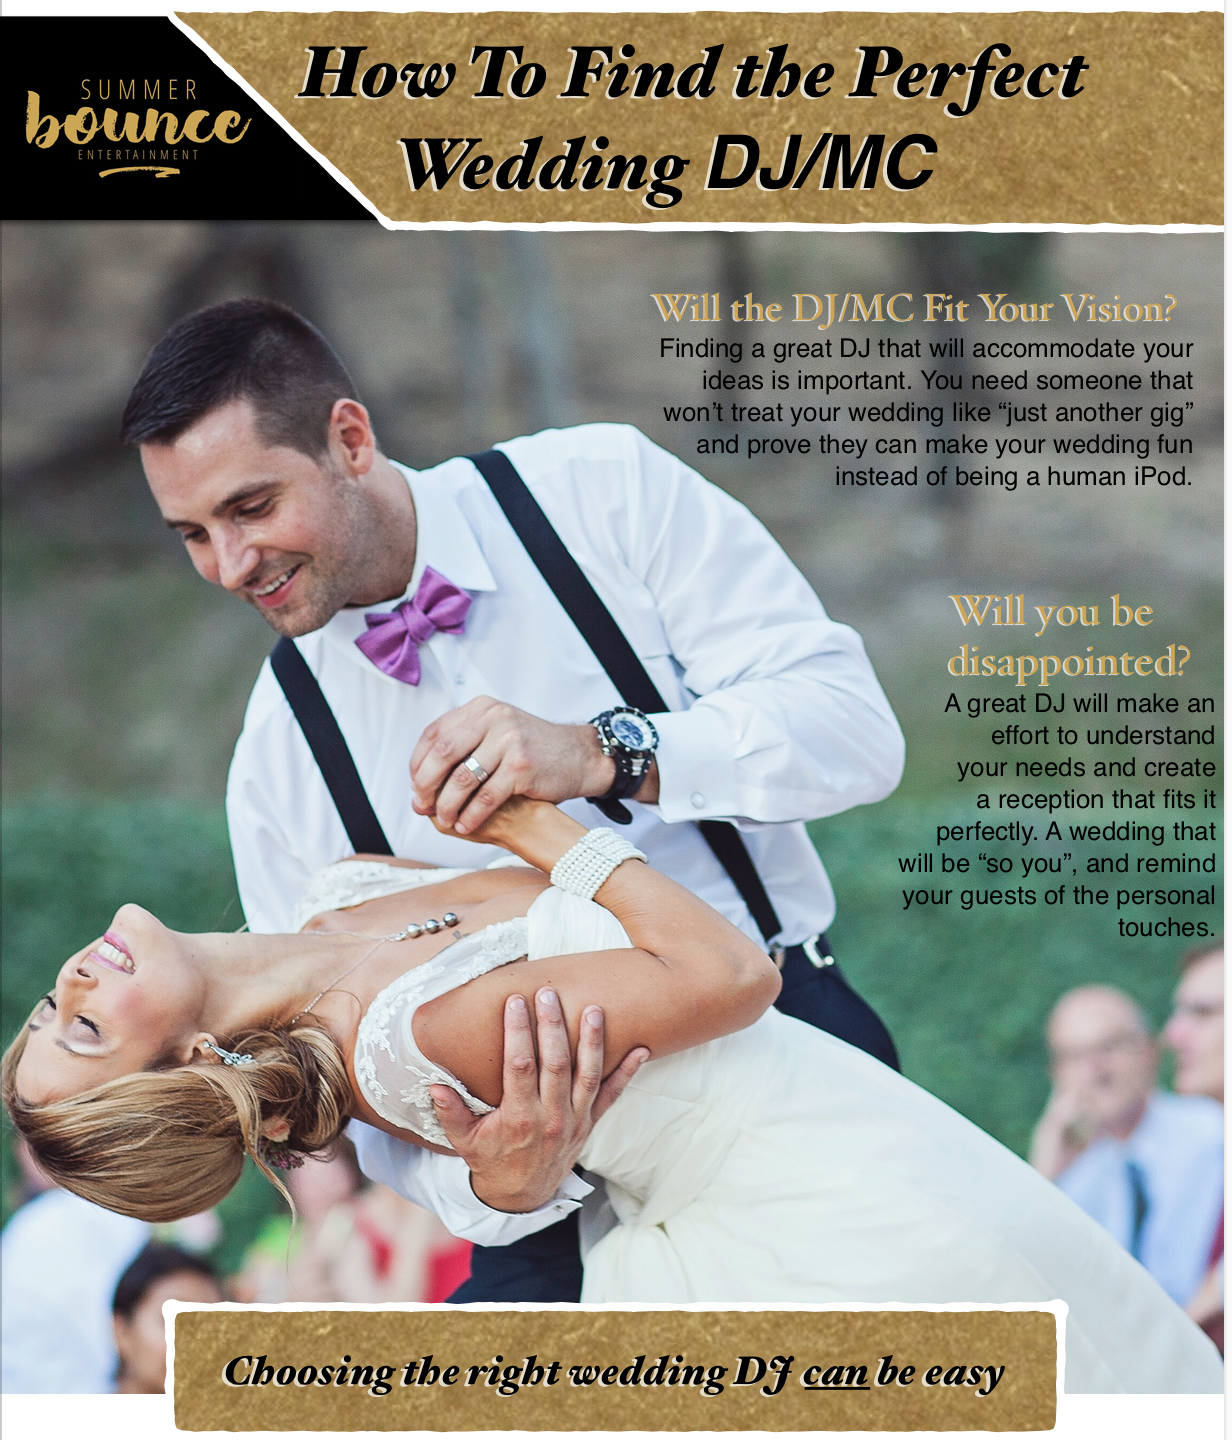 3step to finding the perfect wedding DJ/ MC